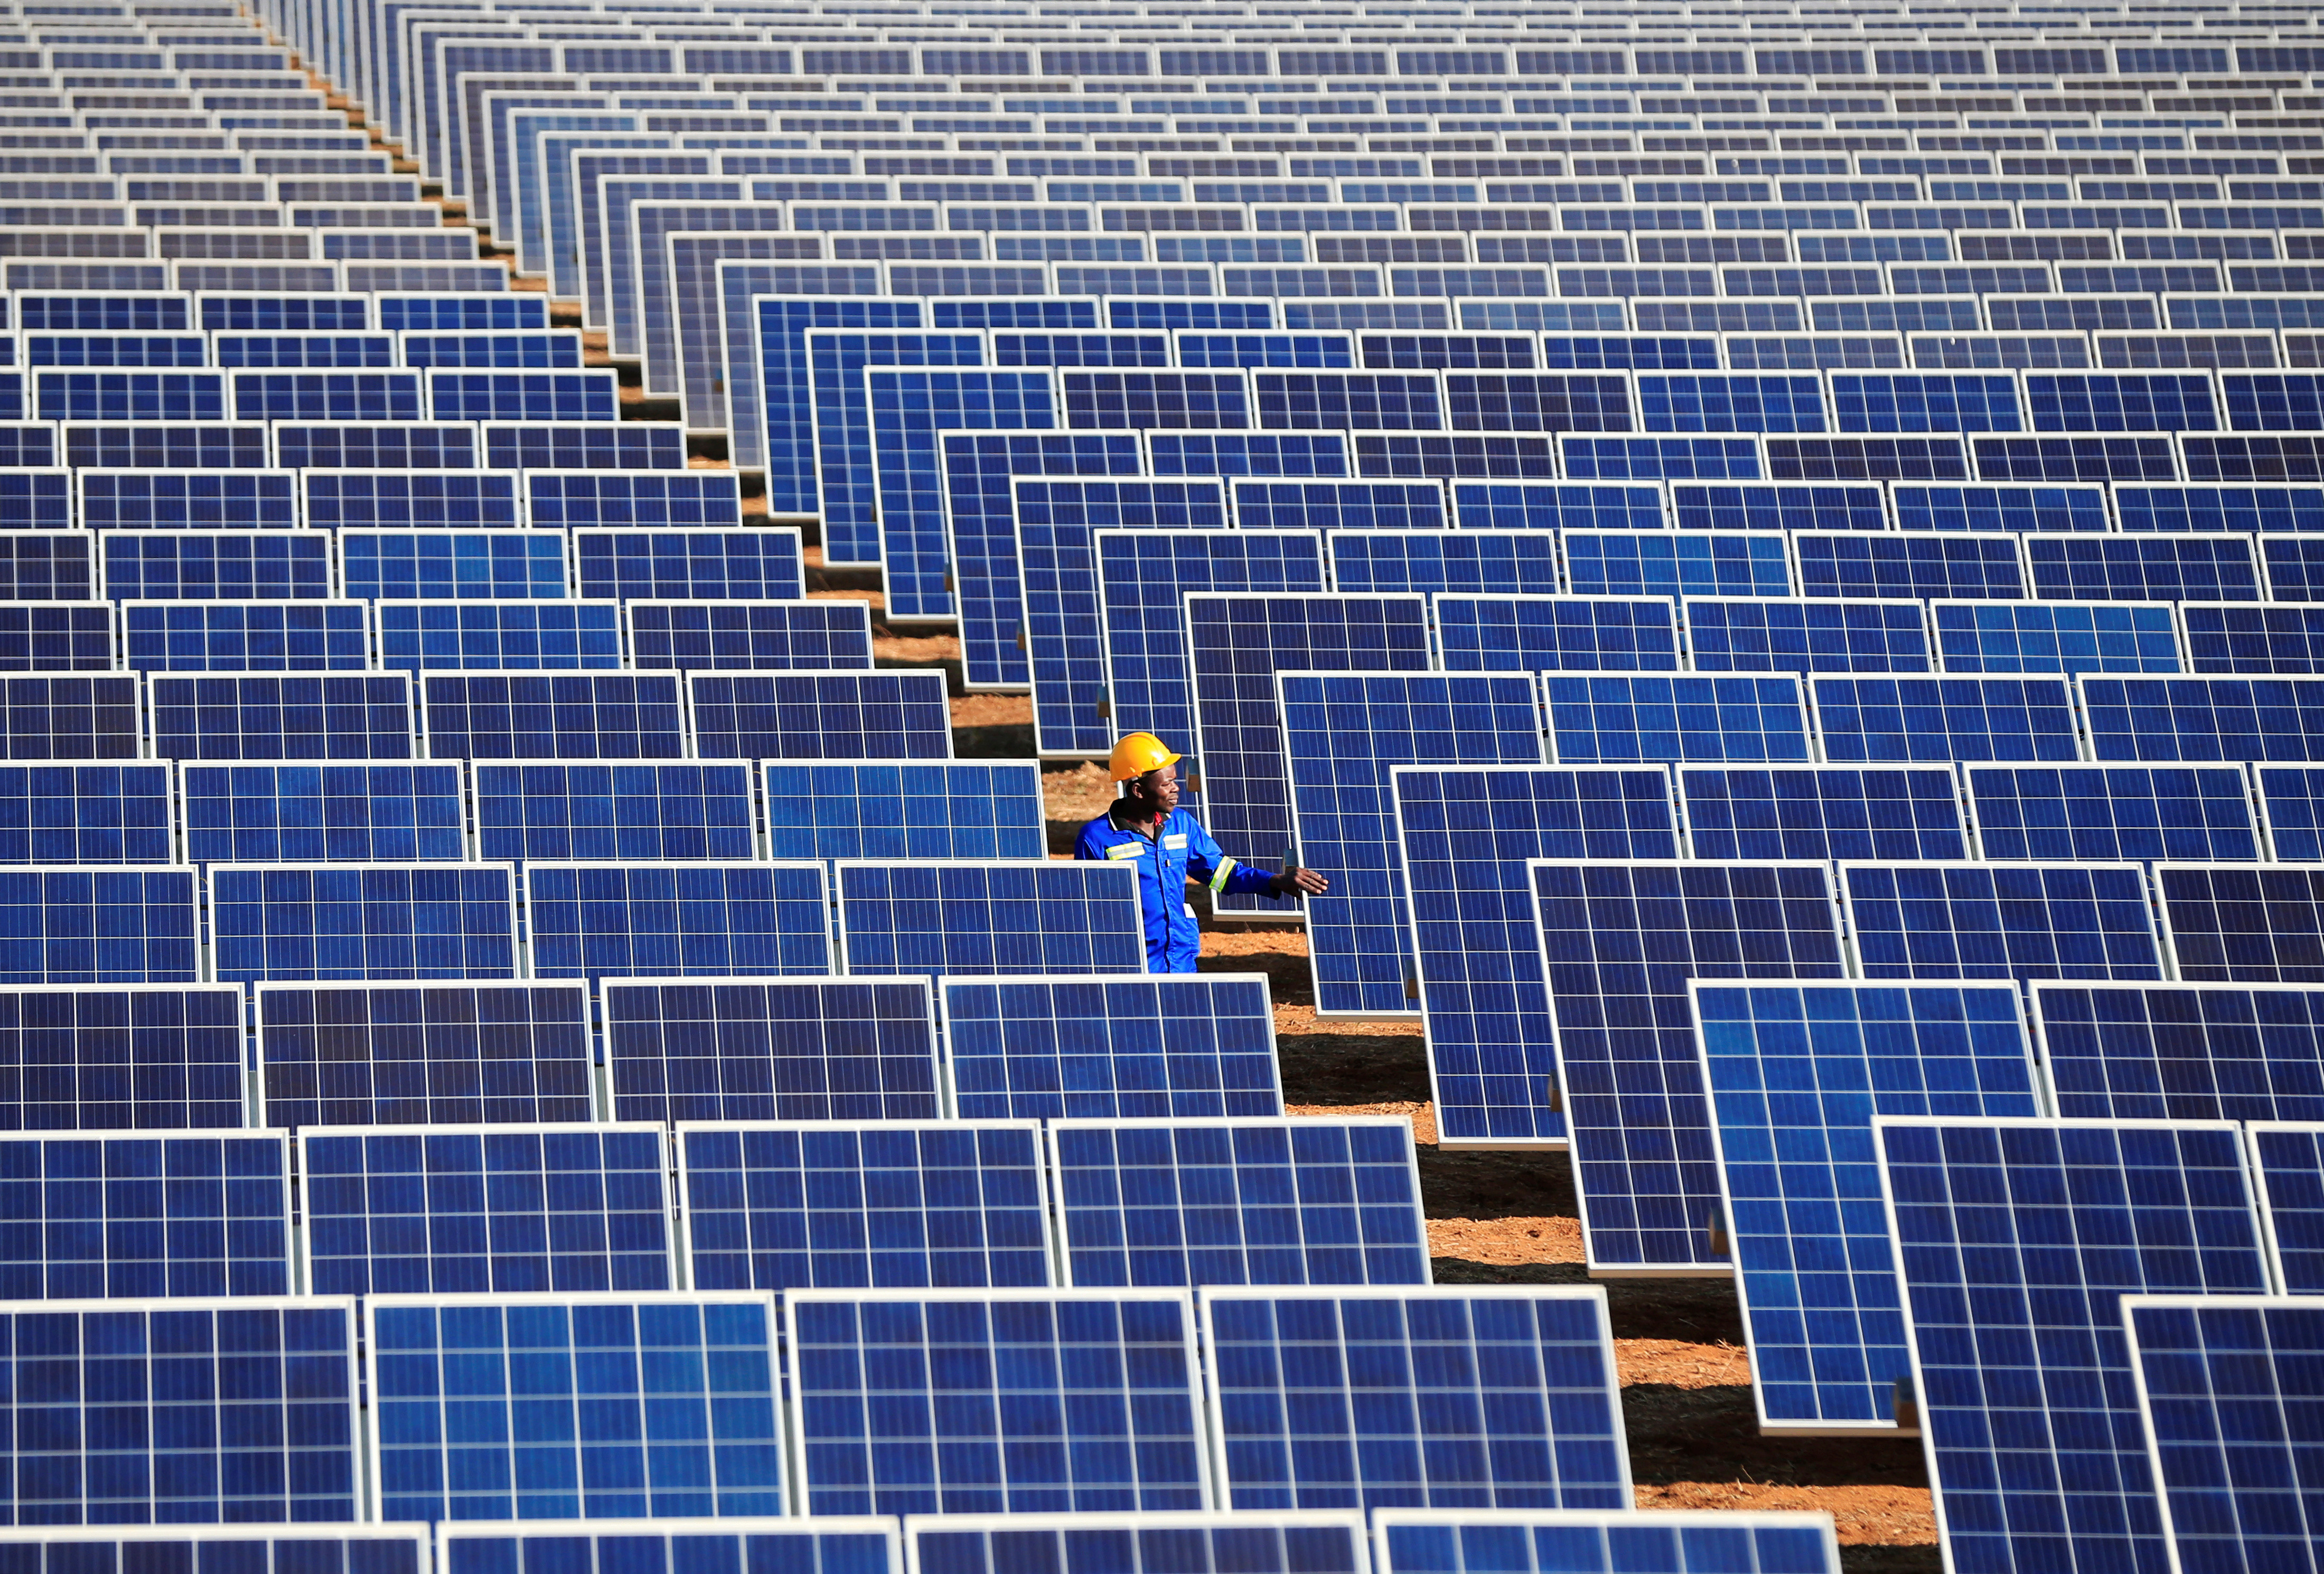 A worker walks between solar panels at Centragrid power plant in Nyabira, Zimbabwe, June 23, 2020